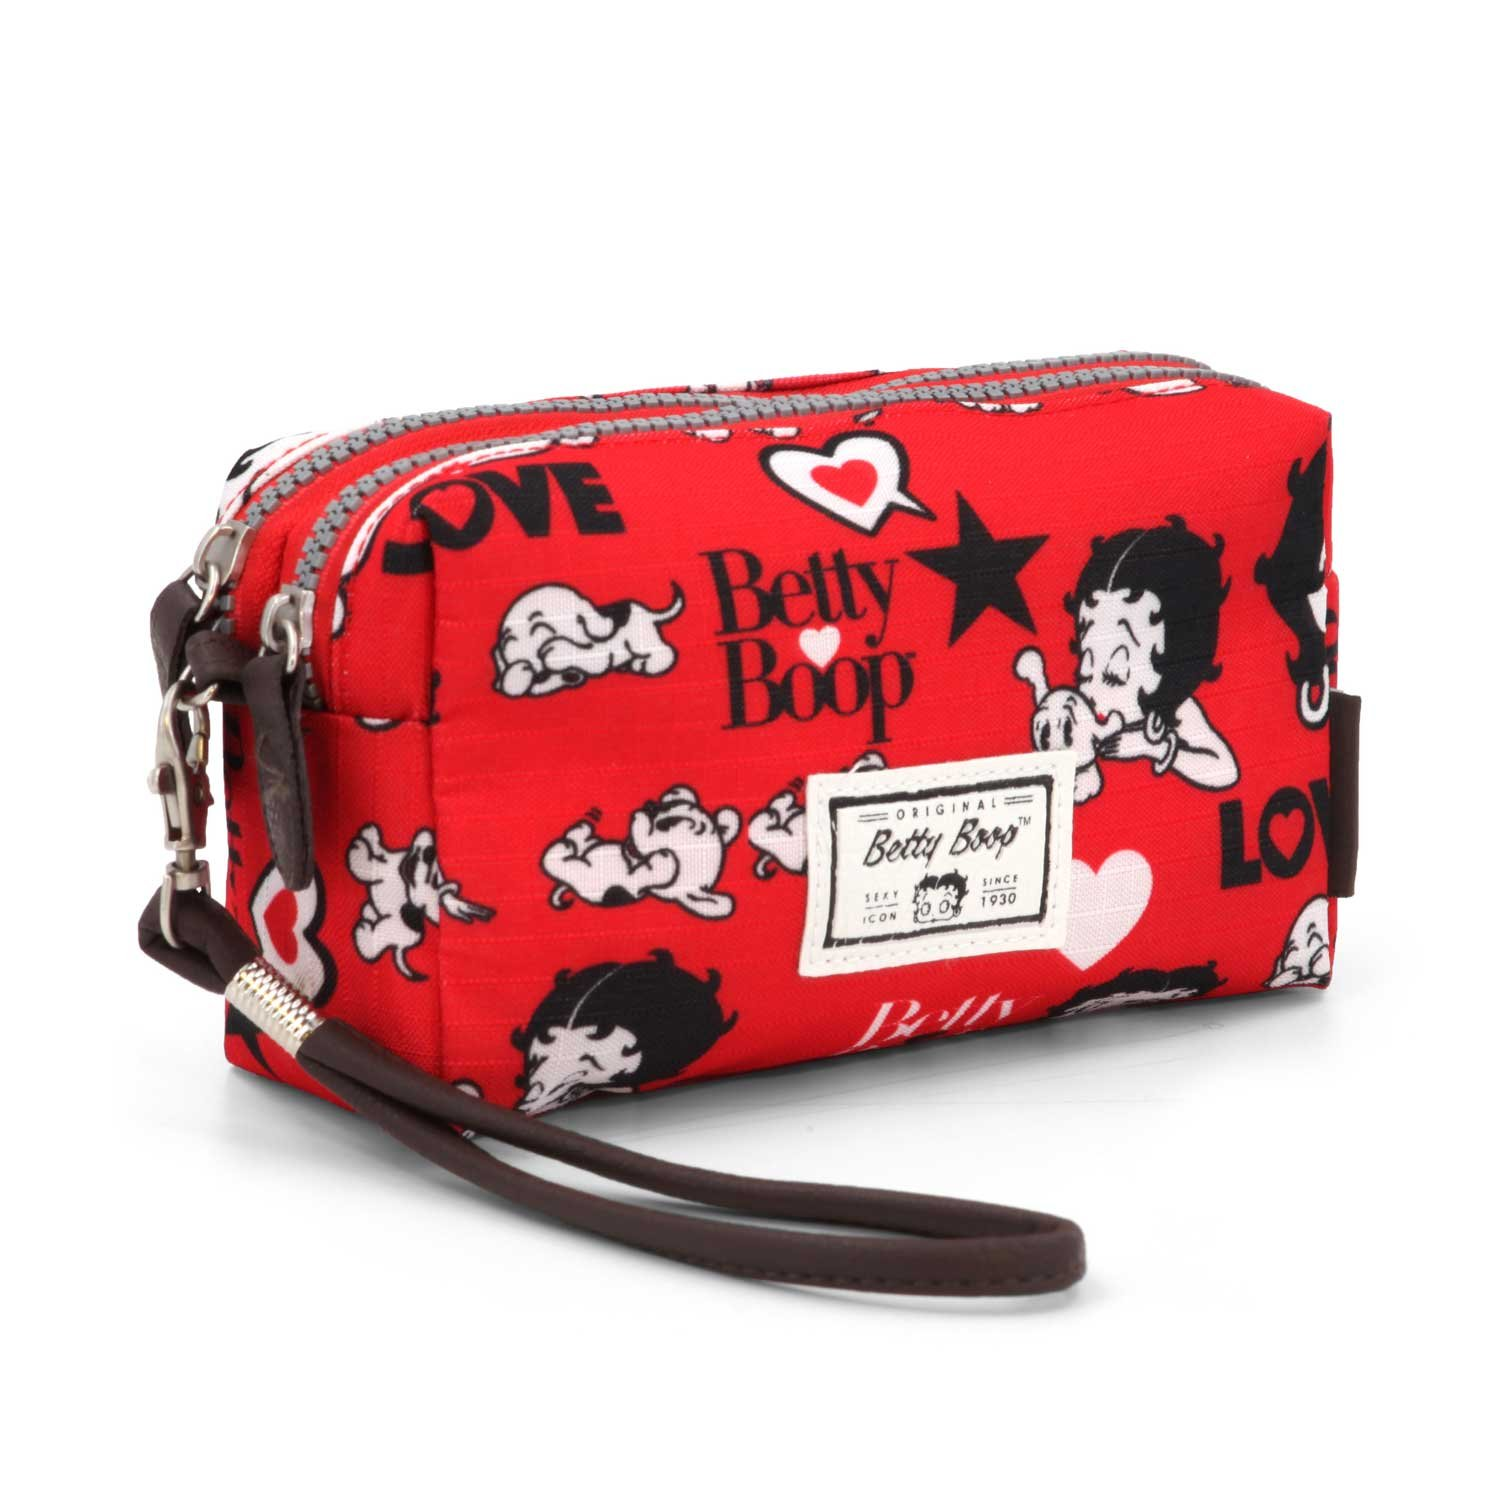 Betty Boop Rouge Trousse de Toilette, 19 cm, (Rojo) Karactermania 36405